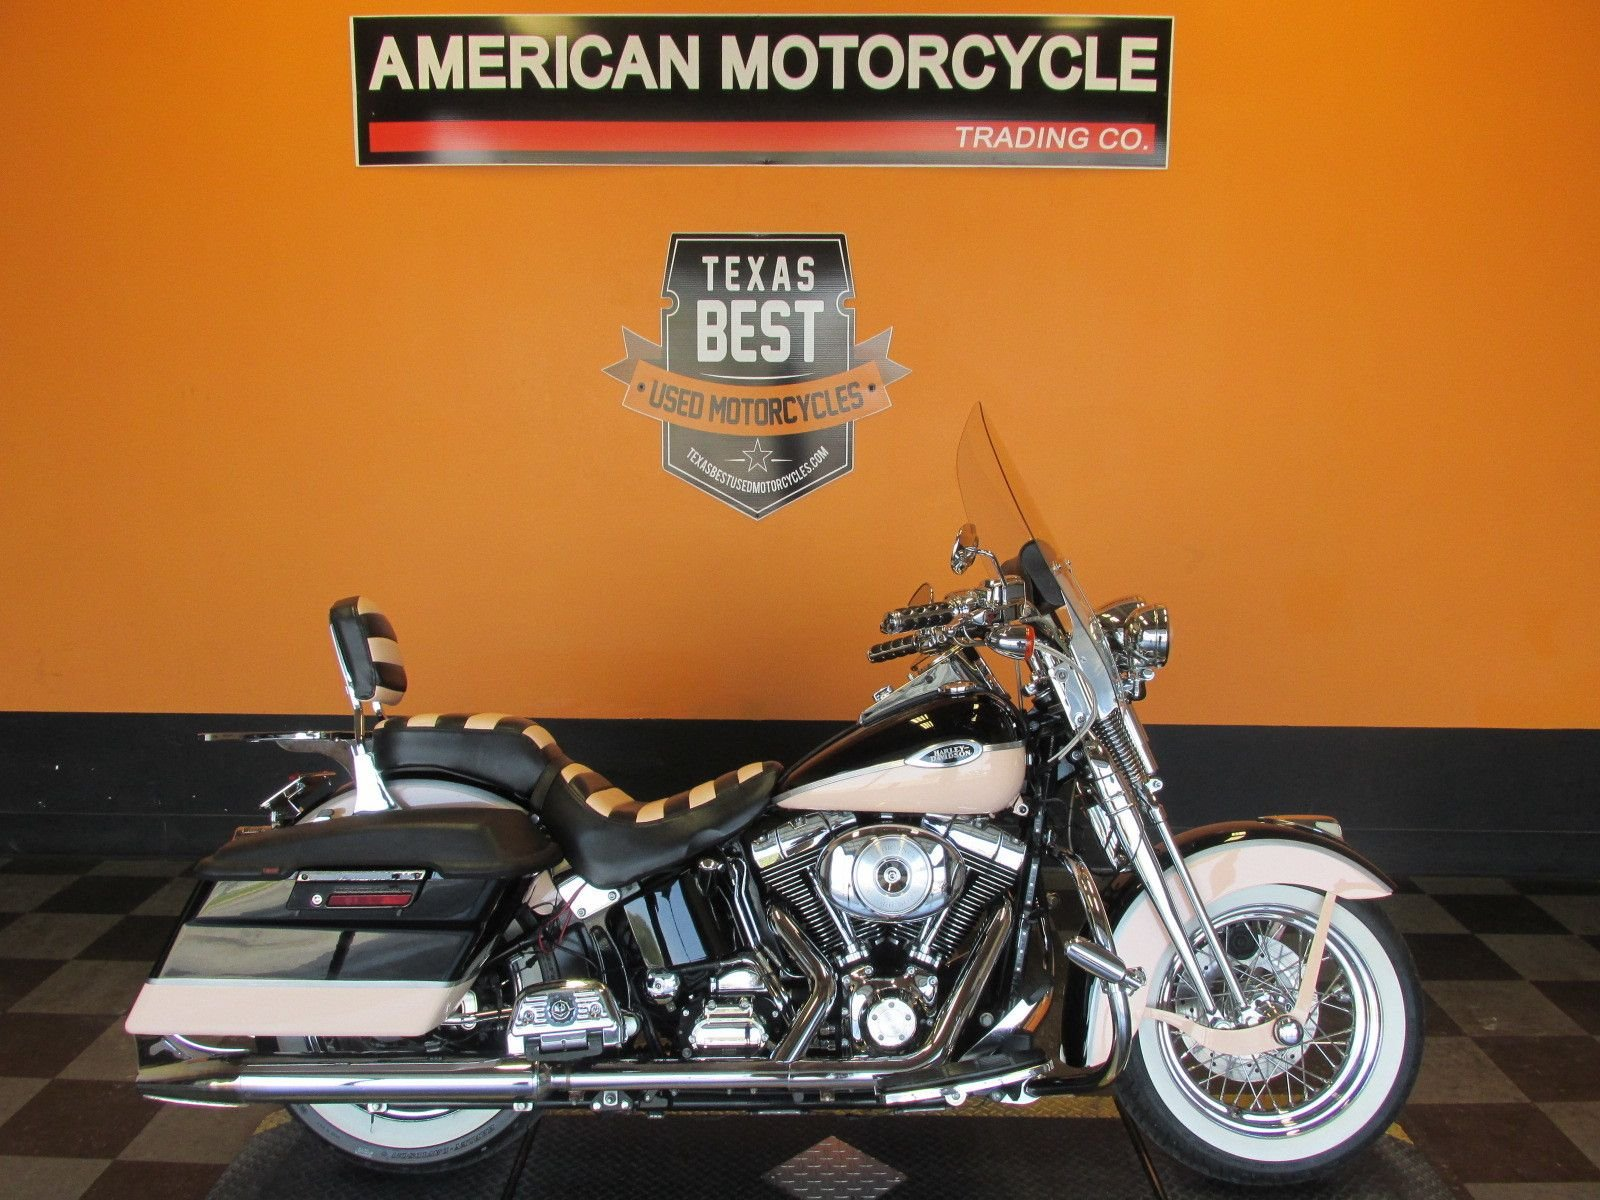 For Sale 2005 Harley-Davidson Softail Heritage Springer